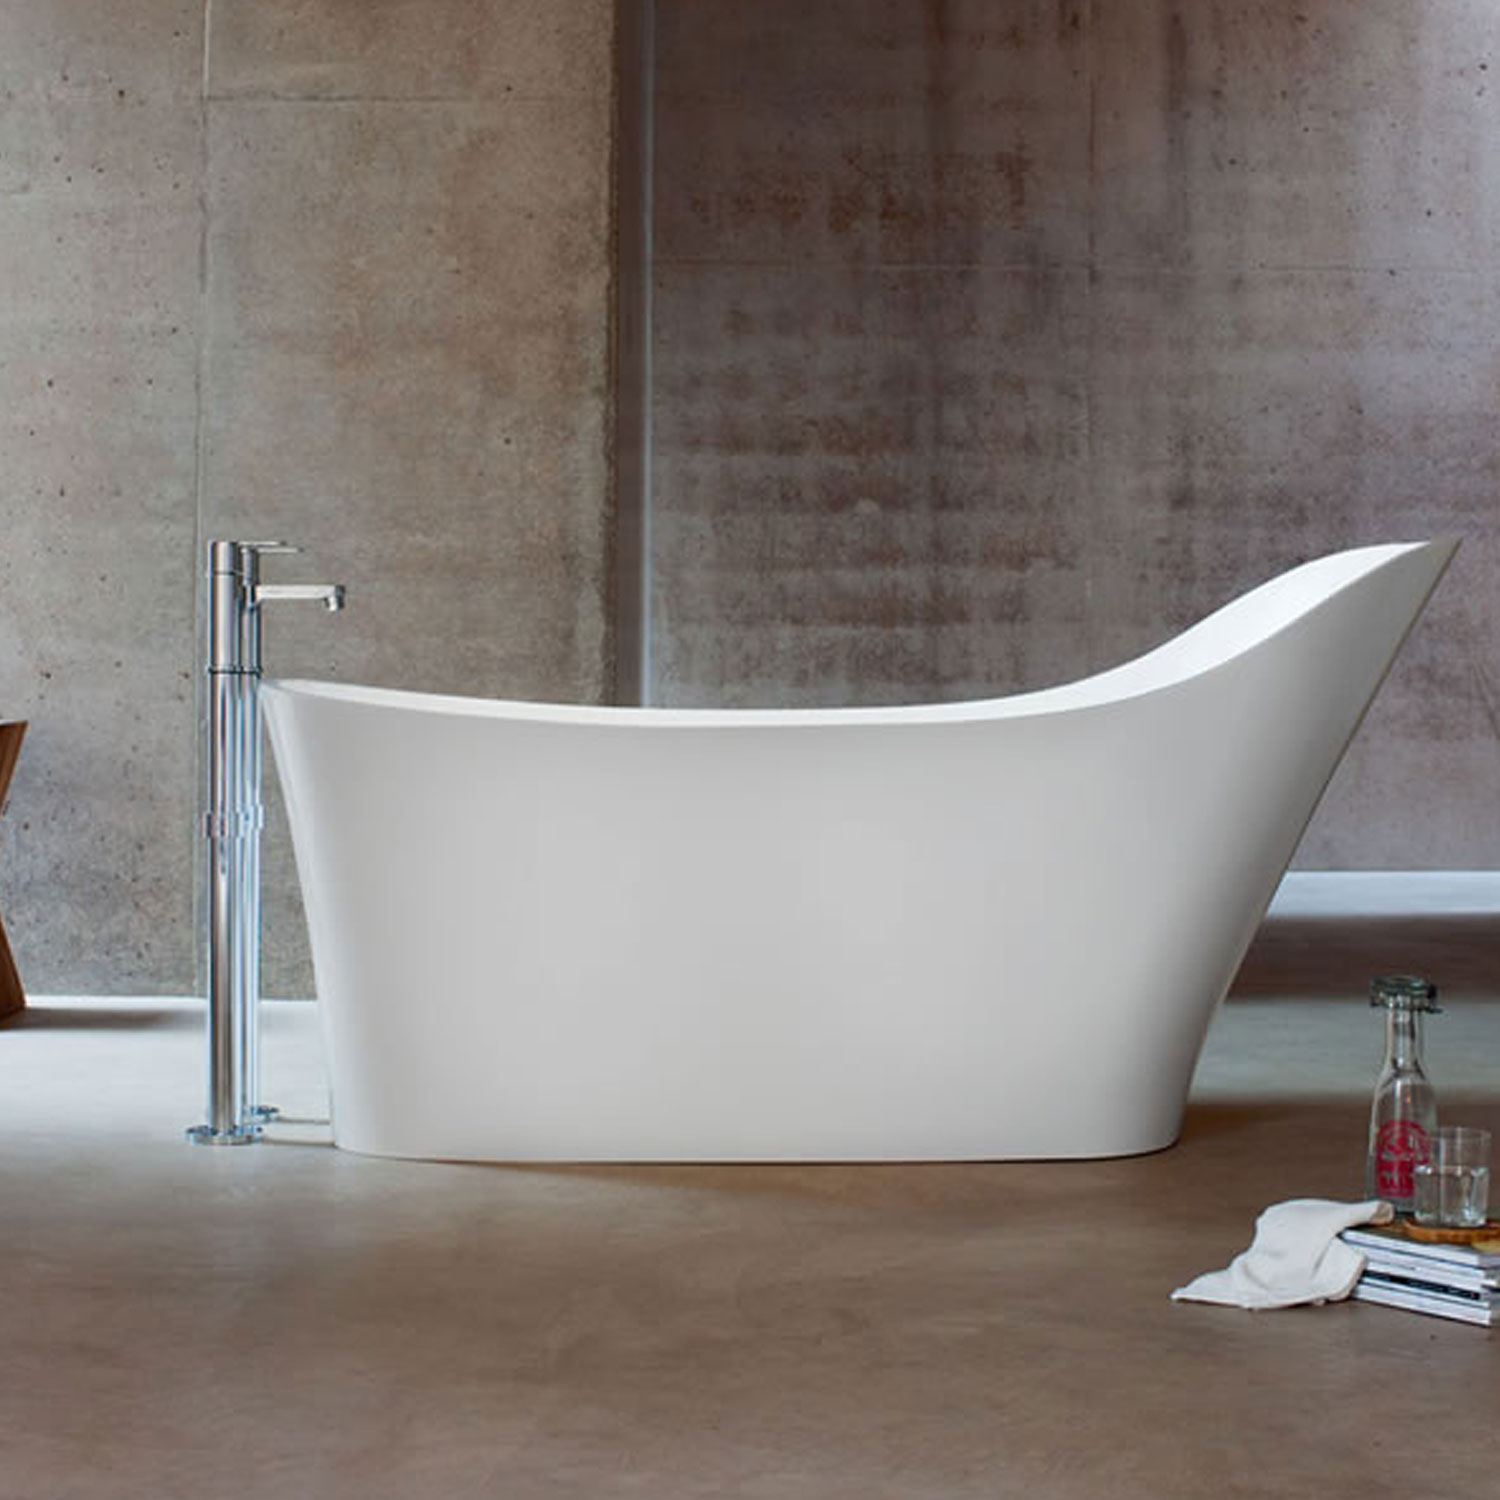 Clearwater Nebbia Freestanding Slipper Bath 1600mm x 800mm - Natural Stone-0